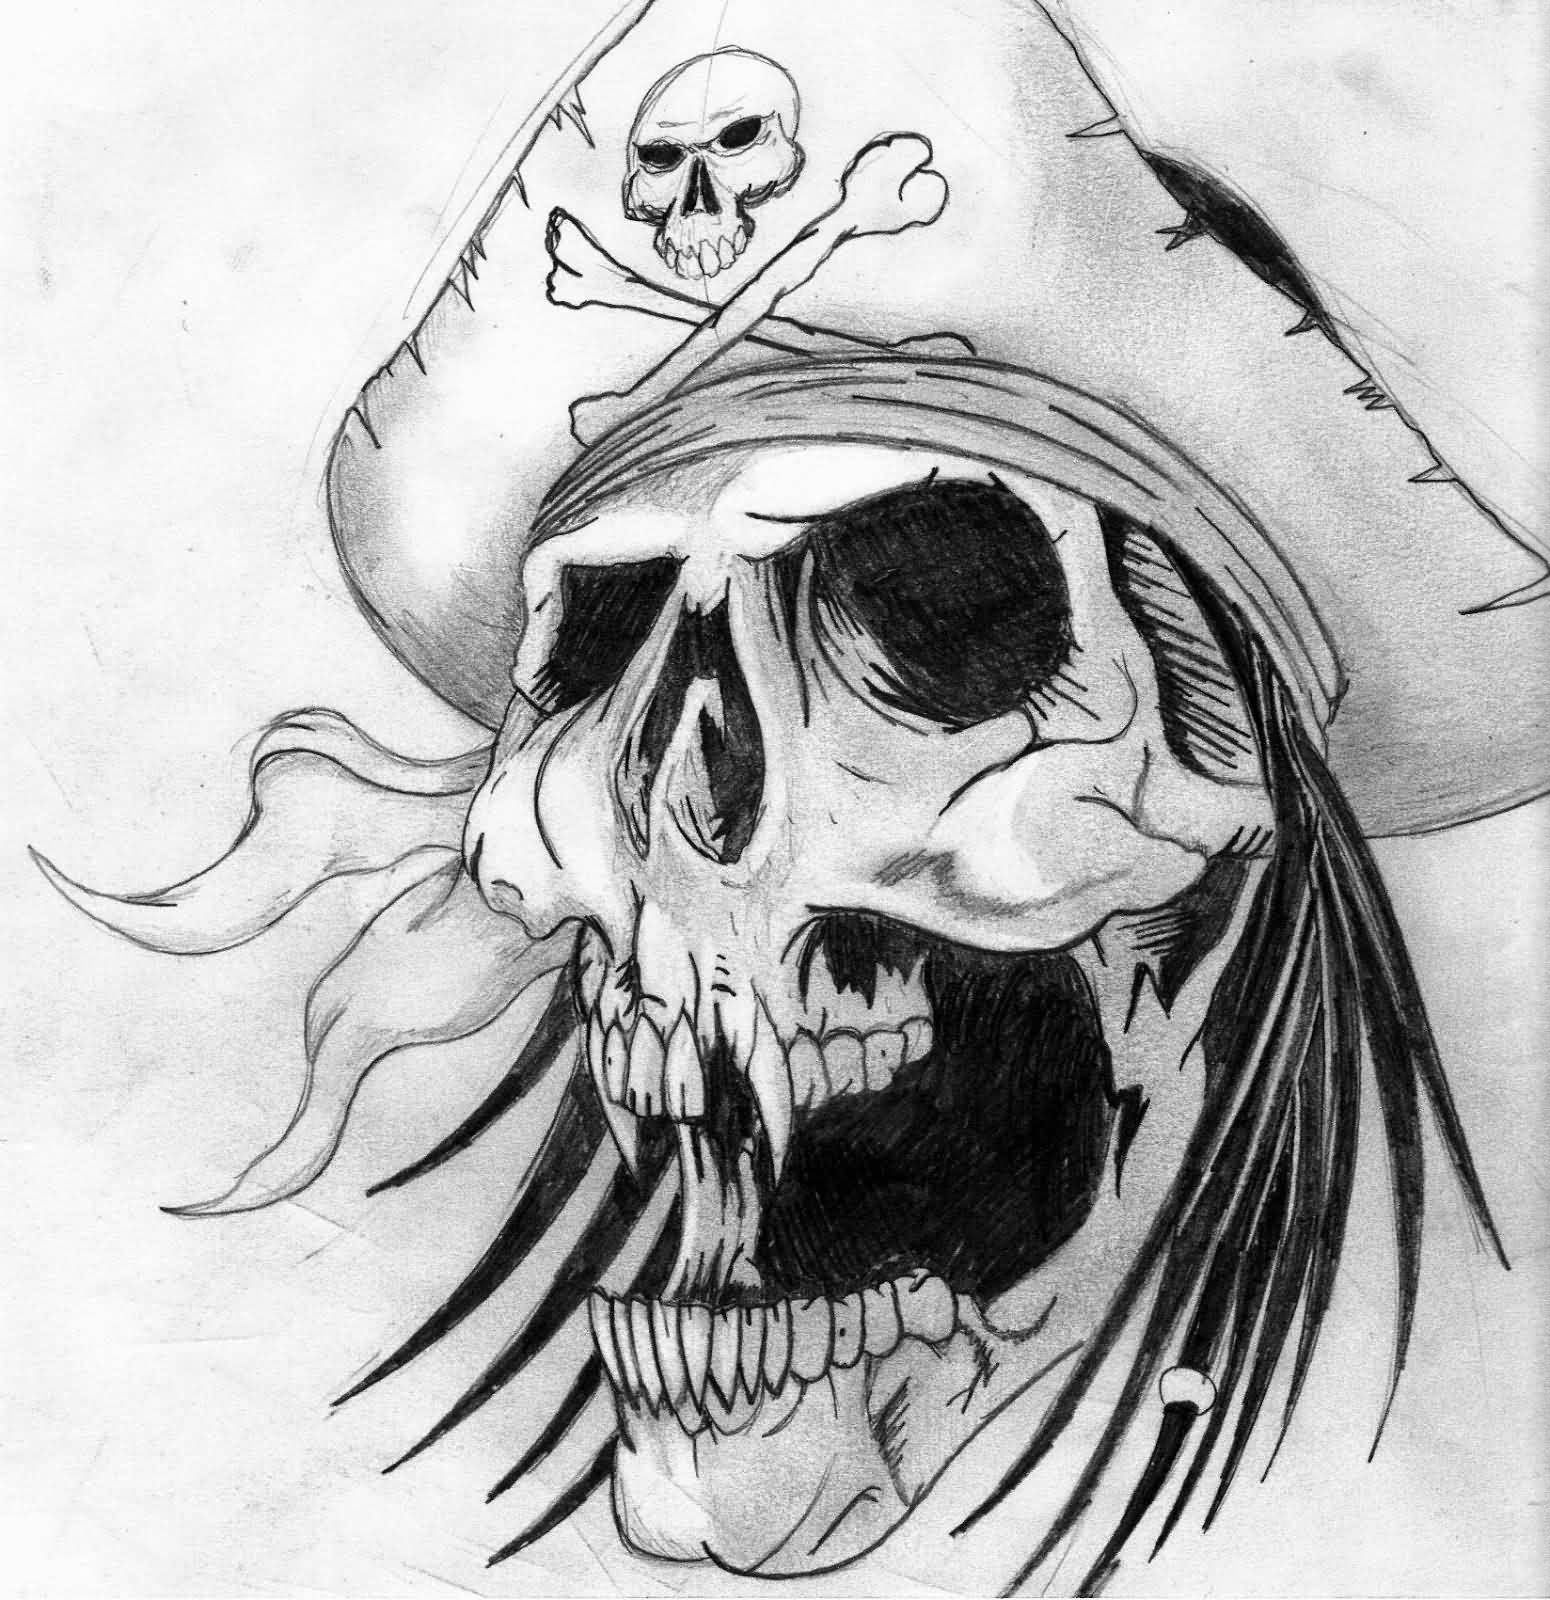 Tattoo Designs Skull: Cool Pirate Skull With Gun And Rose Tattoo Design